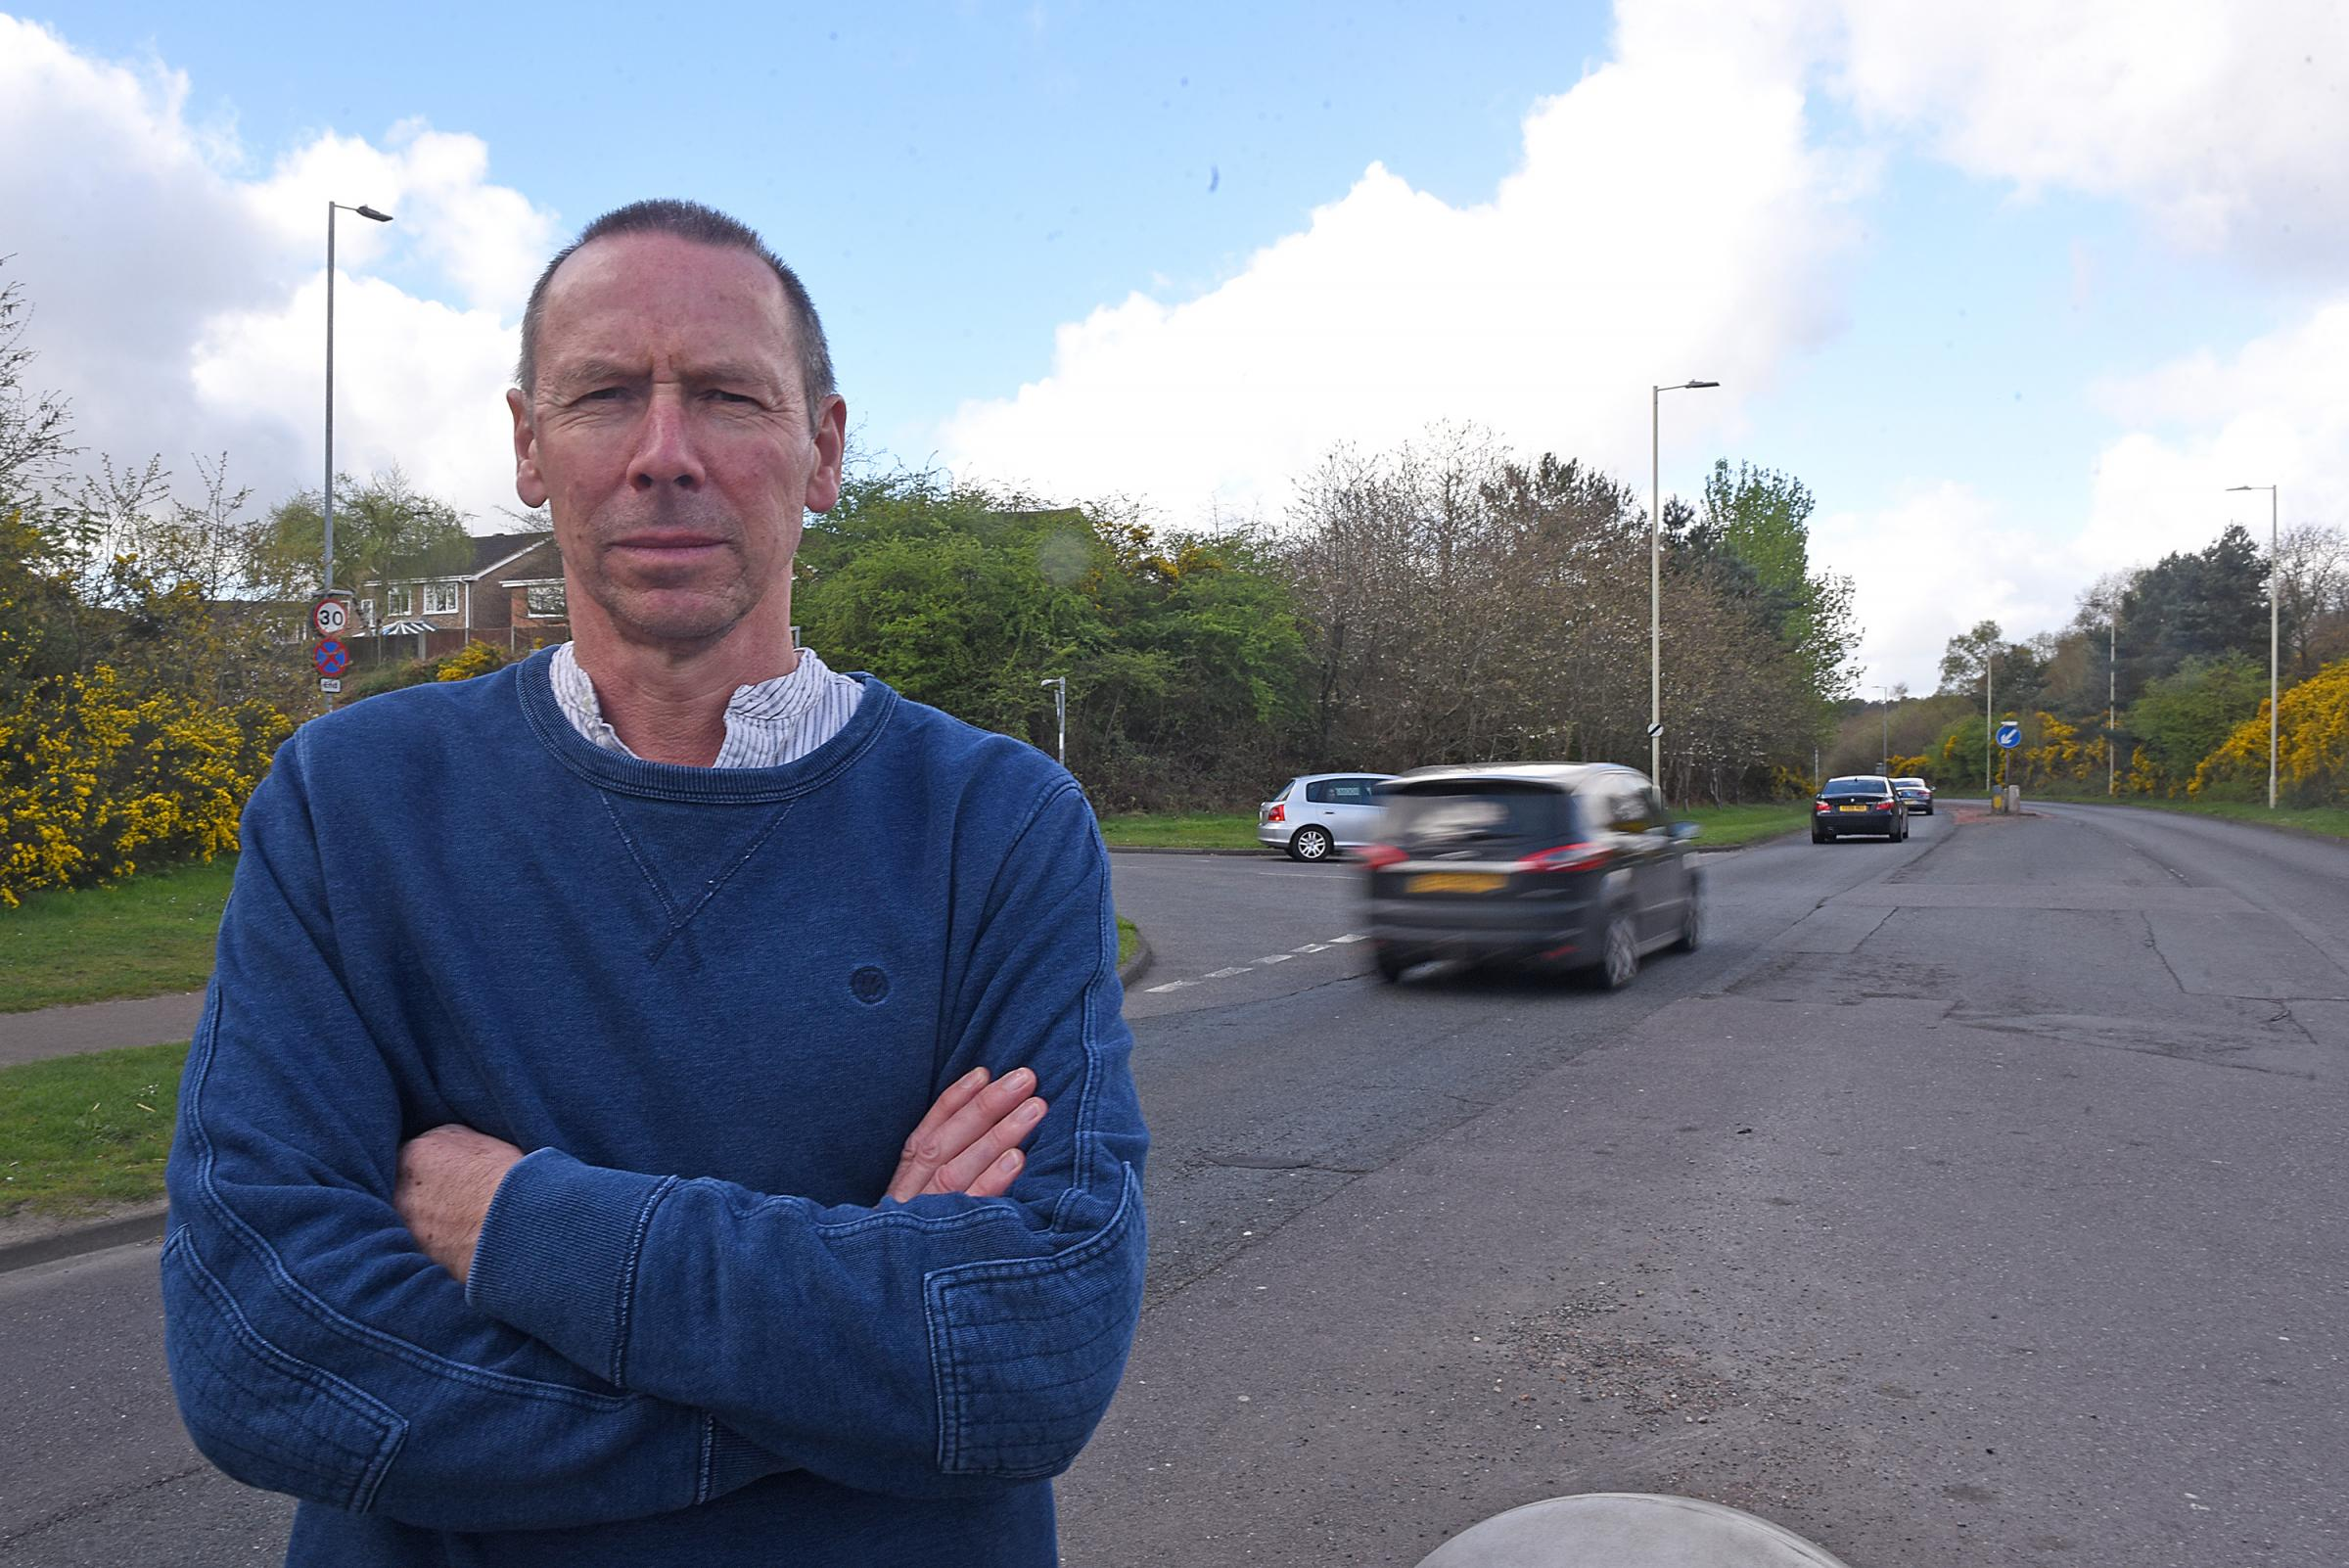 Speeding motorists in busy Sandhurst road are 'accident waiting to happen'